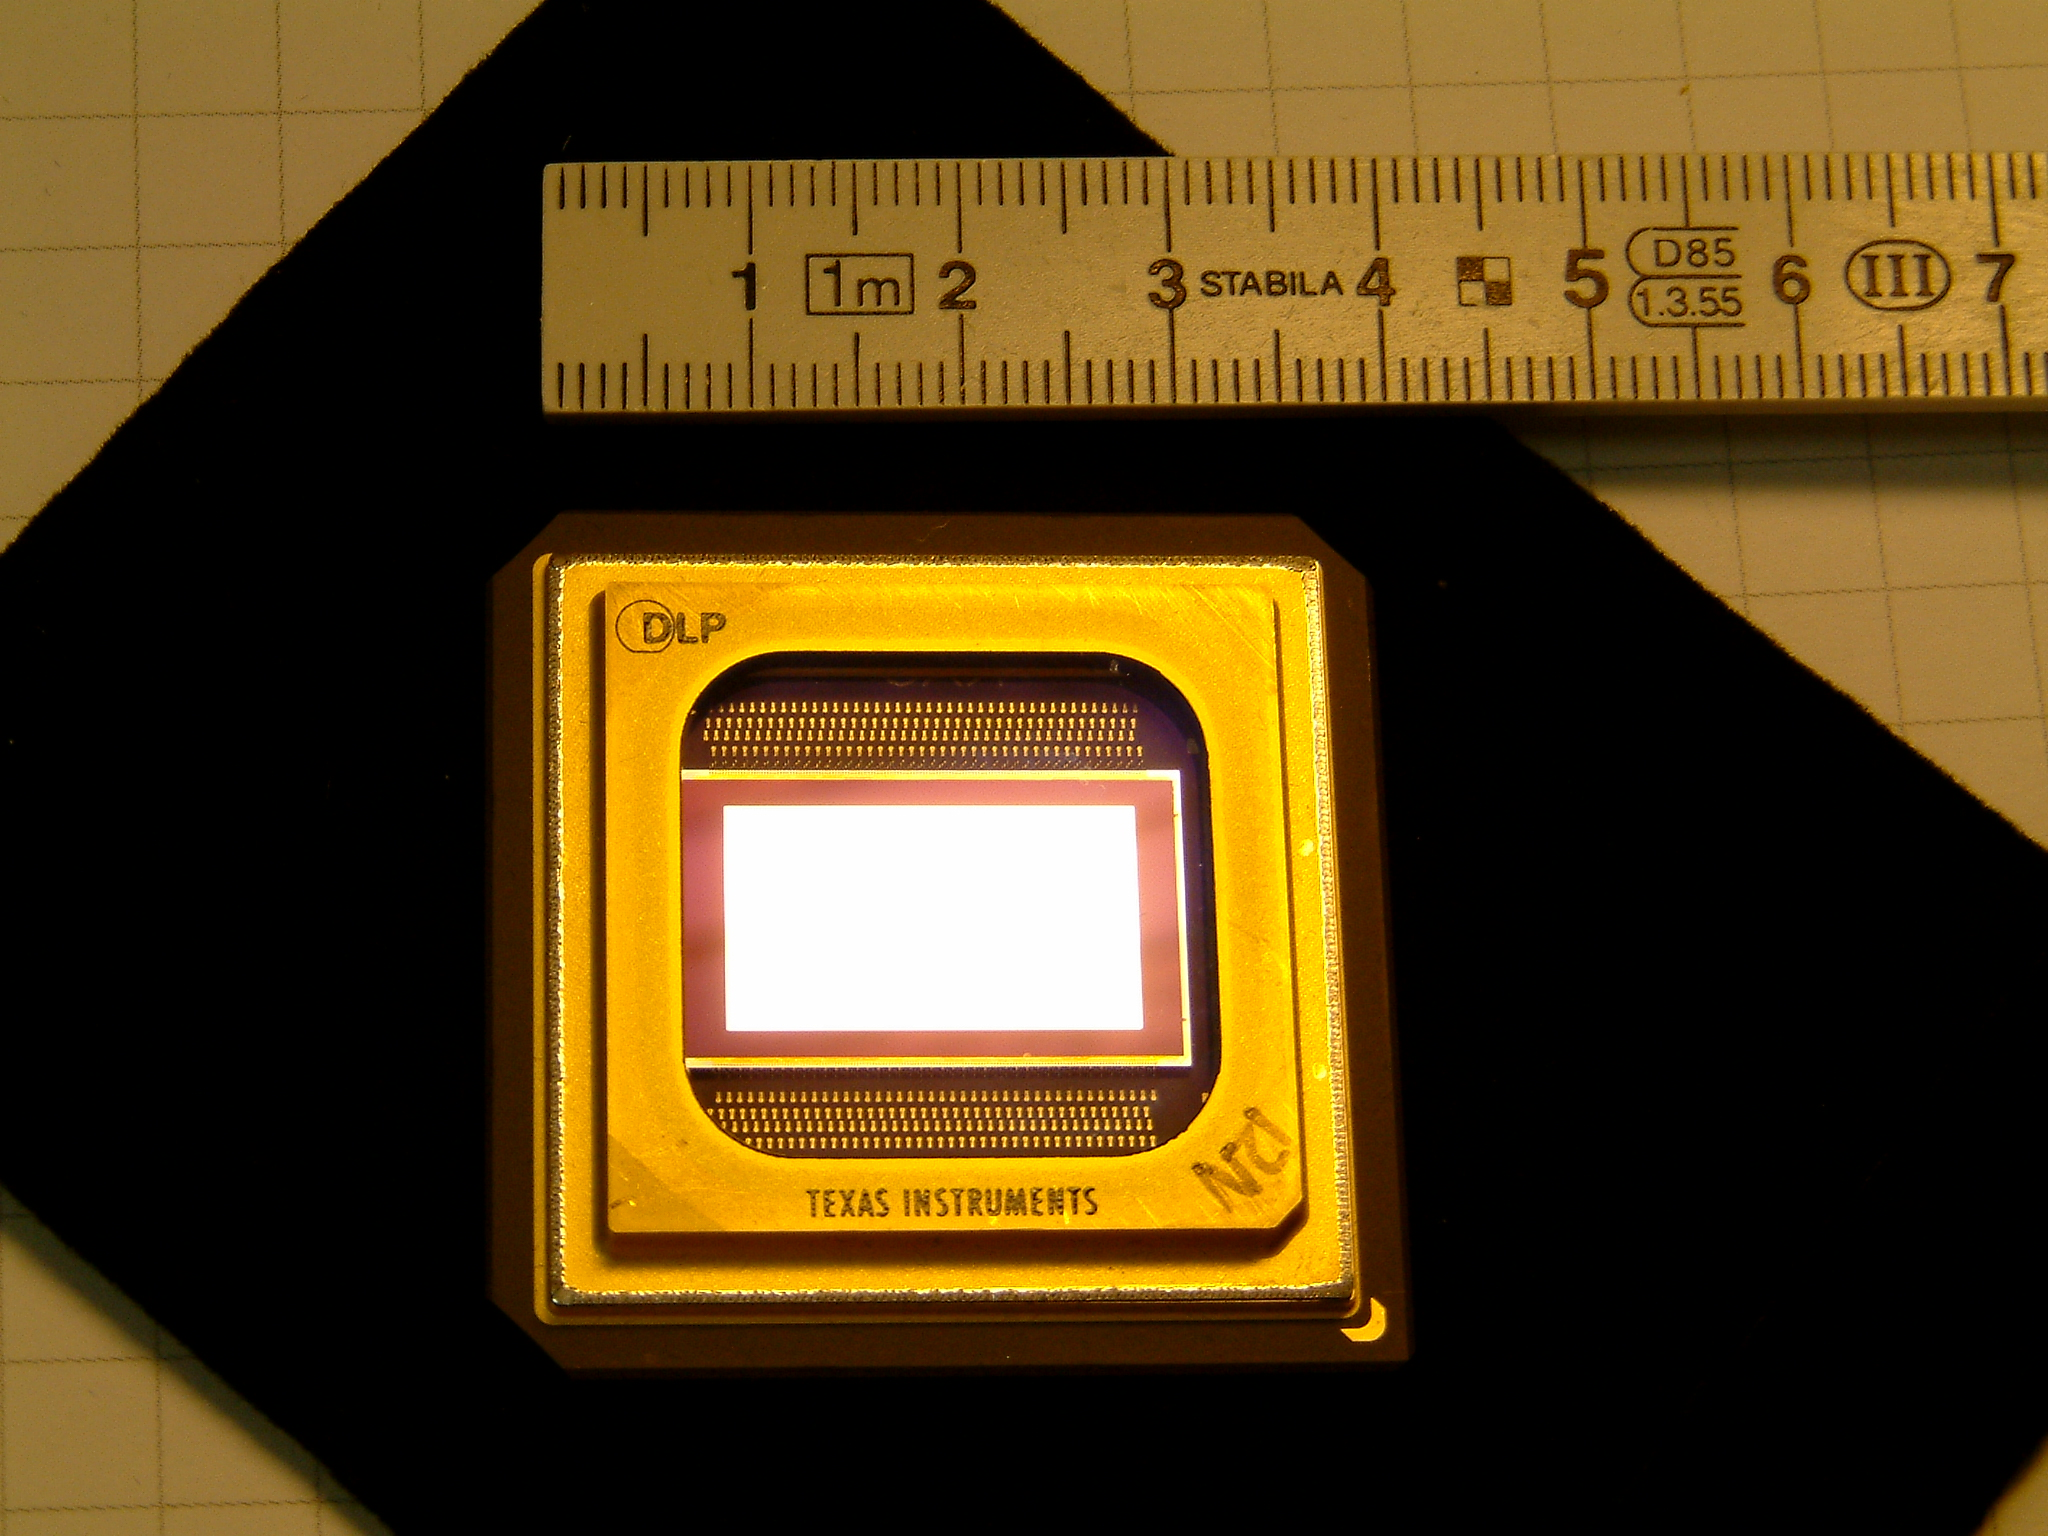 File:Texas Instruments DLP digital micromirror device - (1 ...